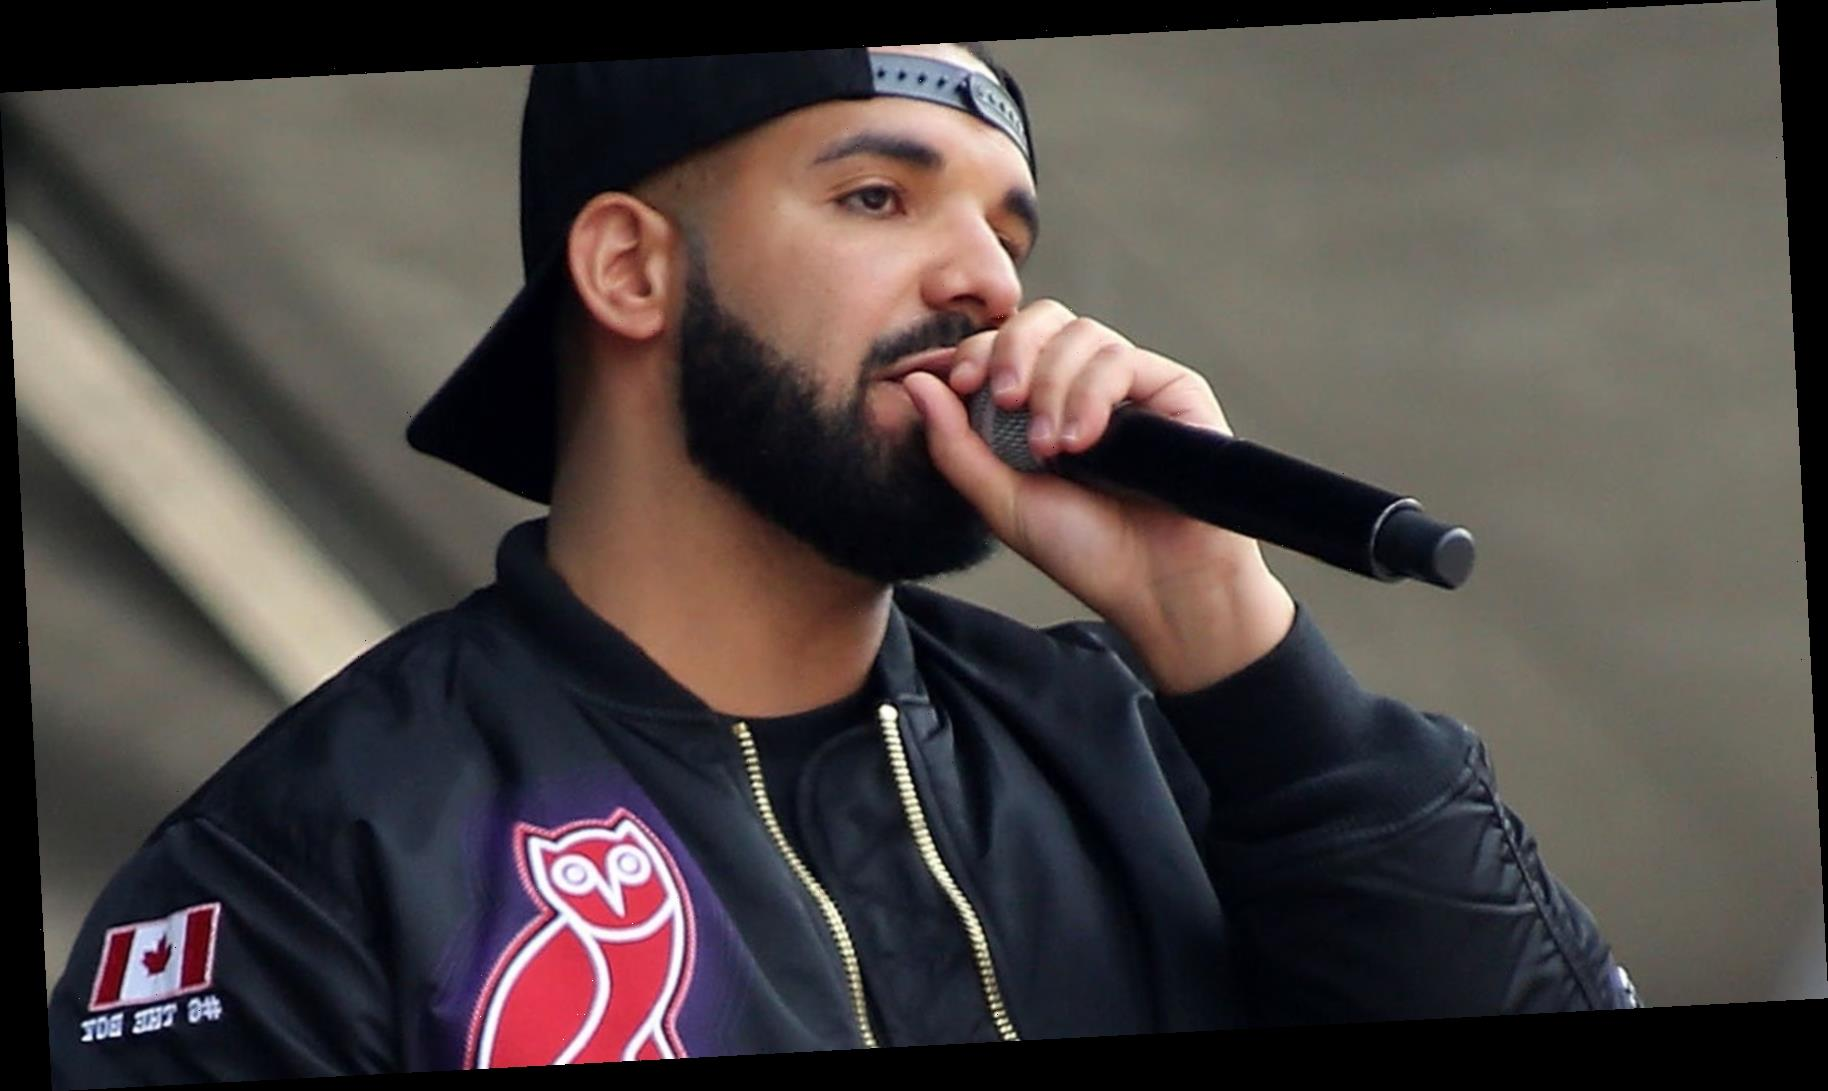 Drake Claps Back Beautifully At Being Booed Off Stage At LA Concert